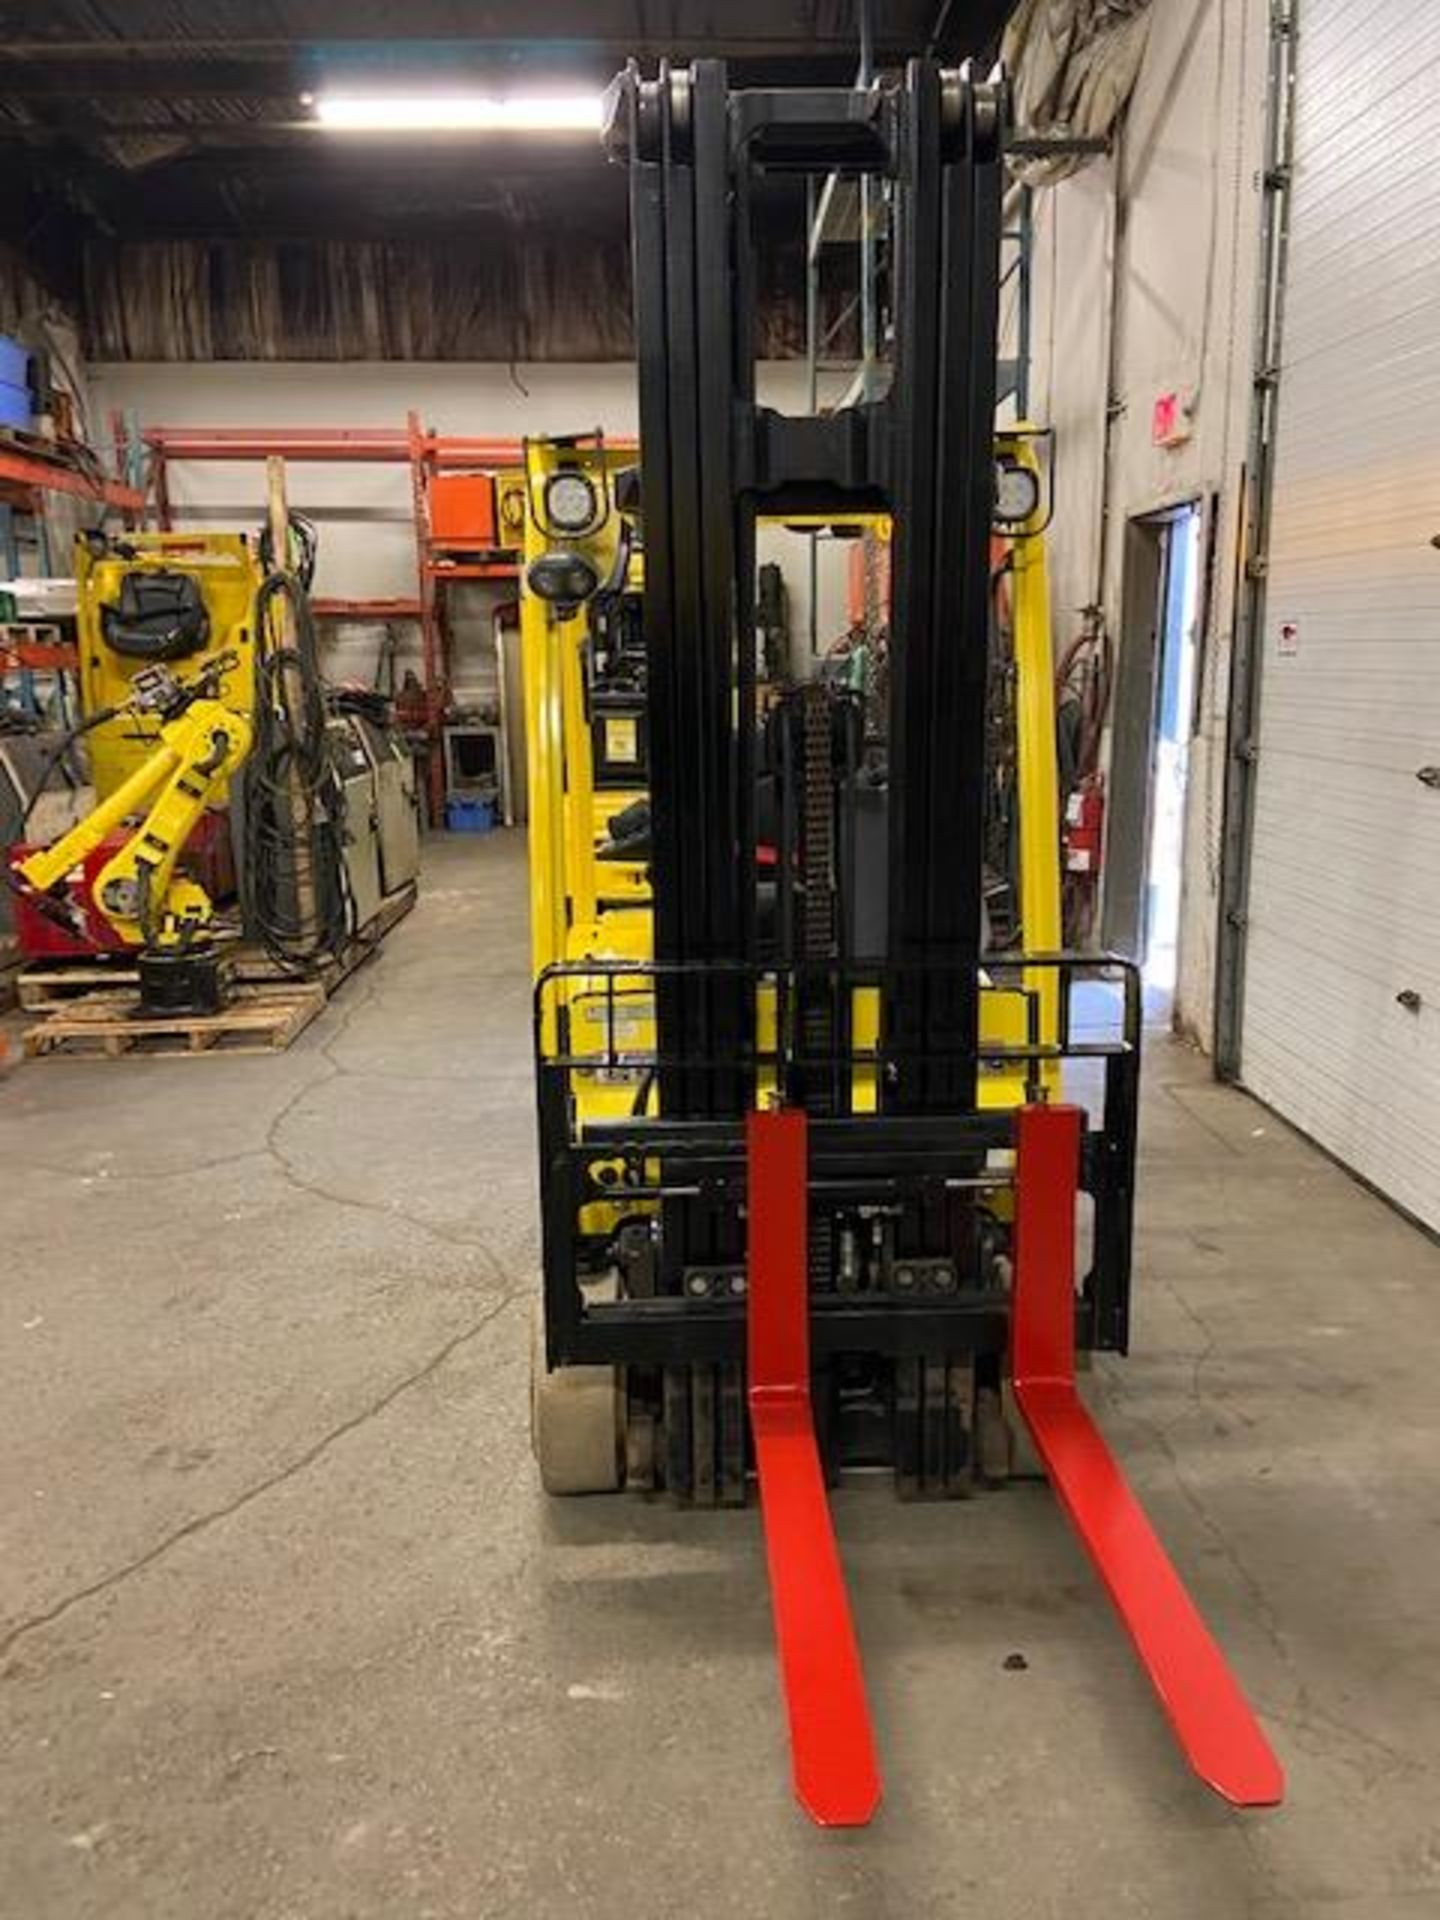 FREE CUSTOMS - 2013 Hyster 3000lbs Capacity 3-wheel Forklift Electric with 3-stage mast with - Image 3 of 3